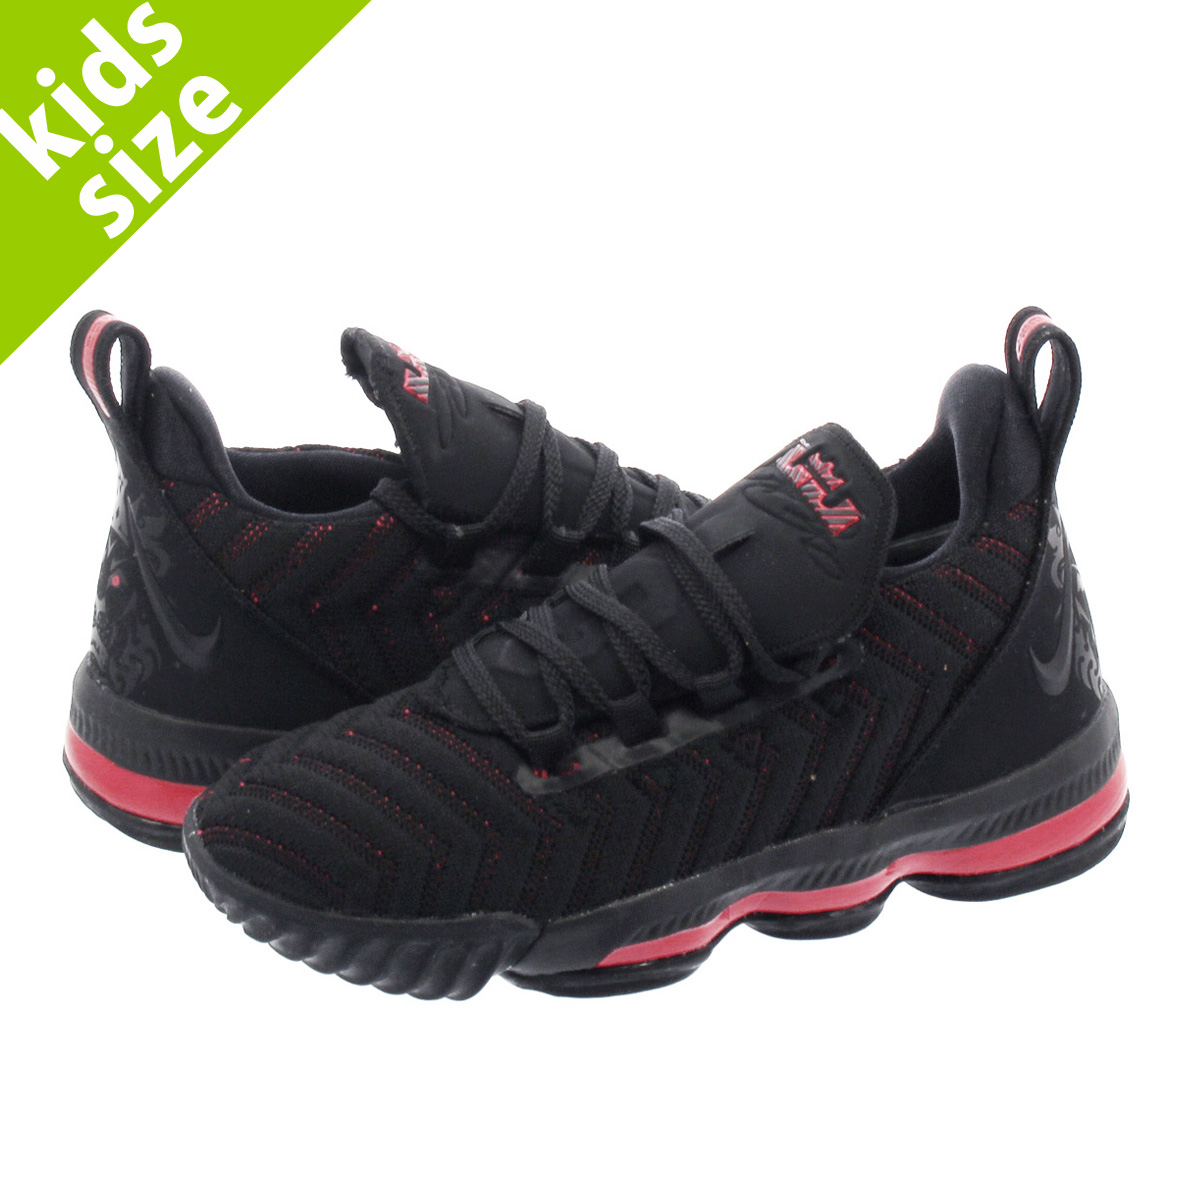 first rate e4144 50ea1 NIKE LEBRON 16 PS Nike Revlon 16 PS BLACK/UNIVERSITY RED aq2467-002